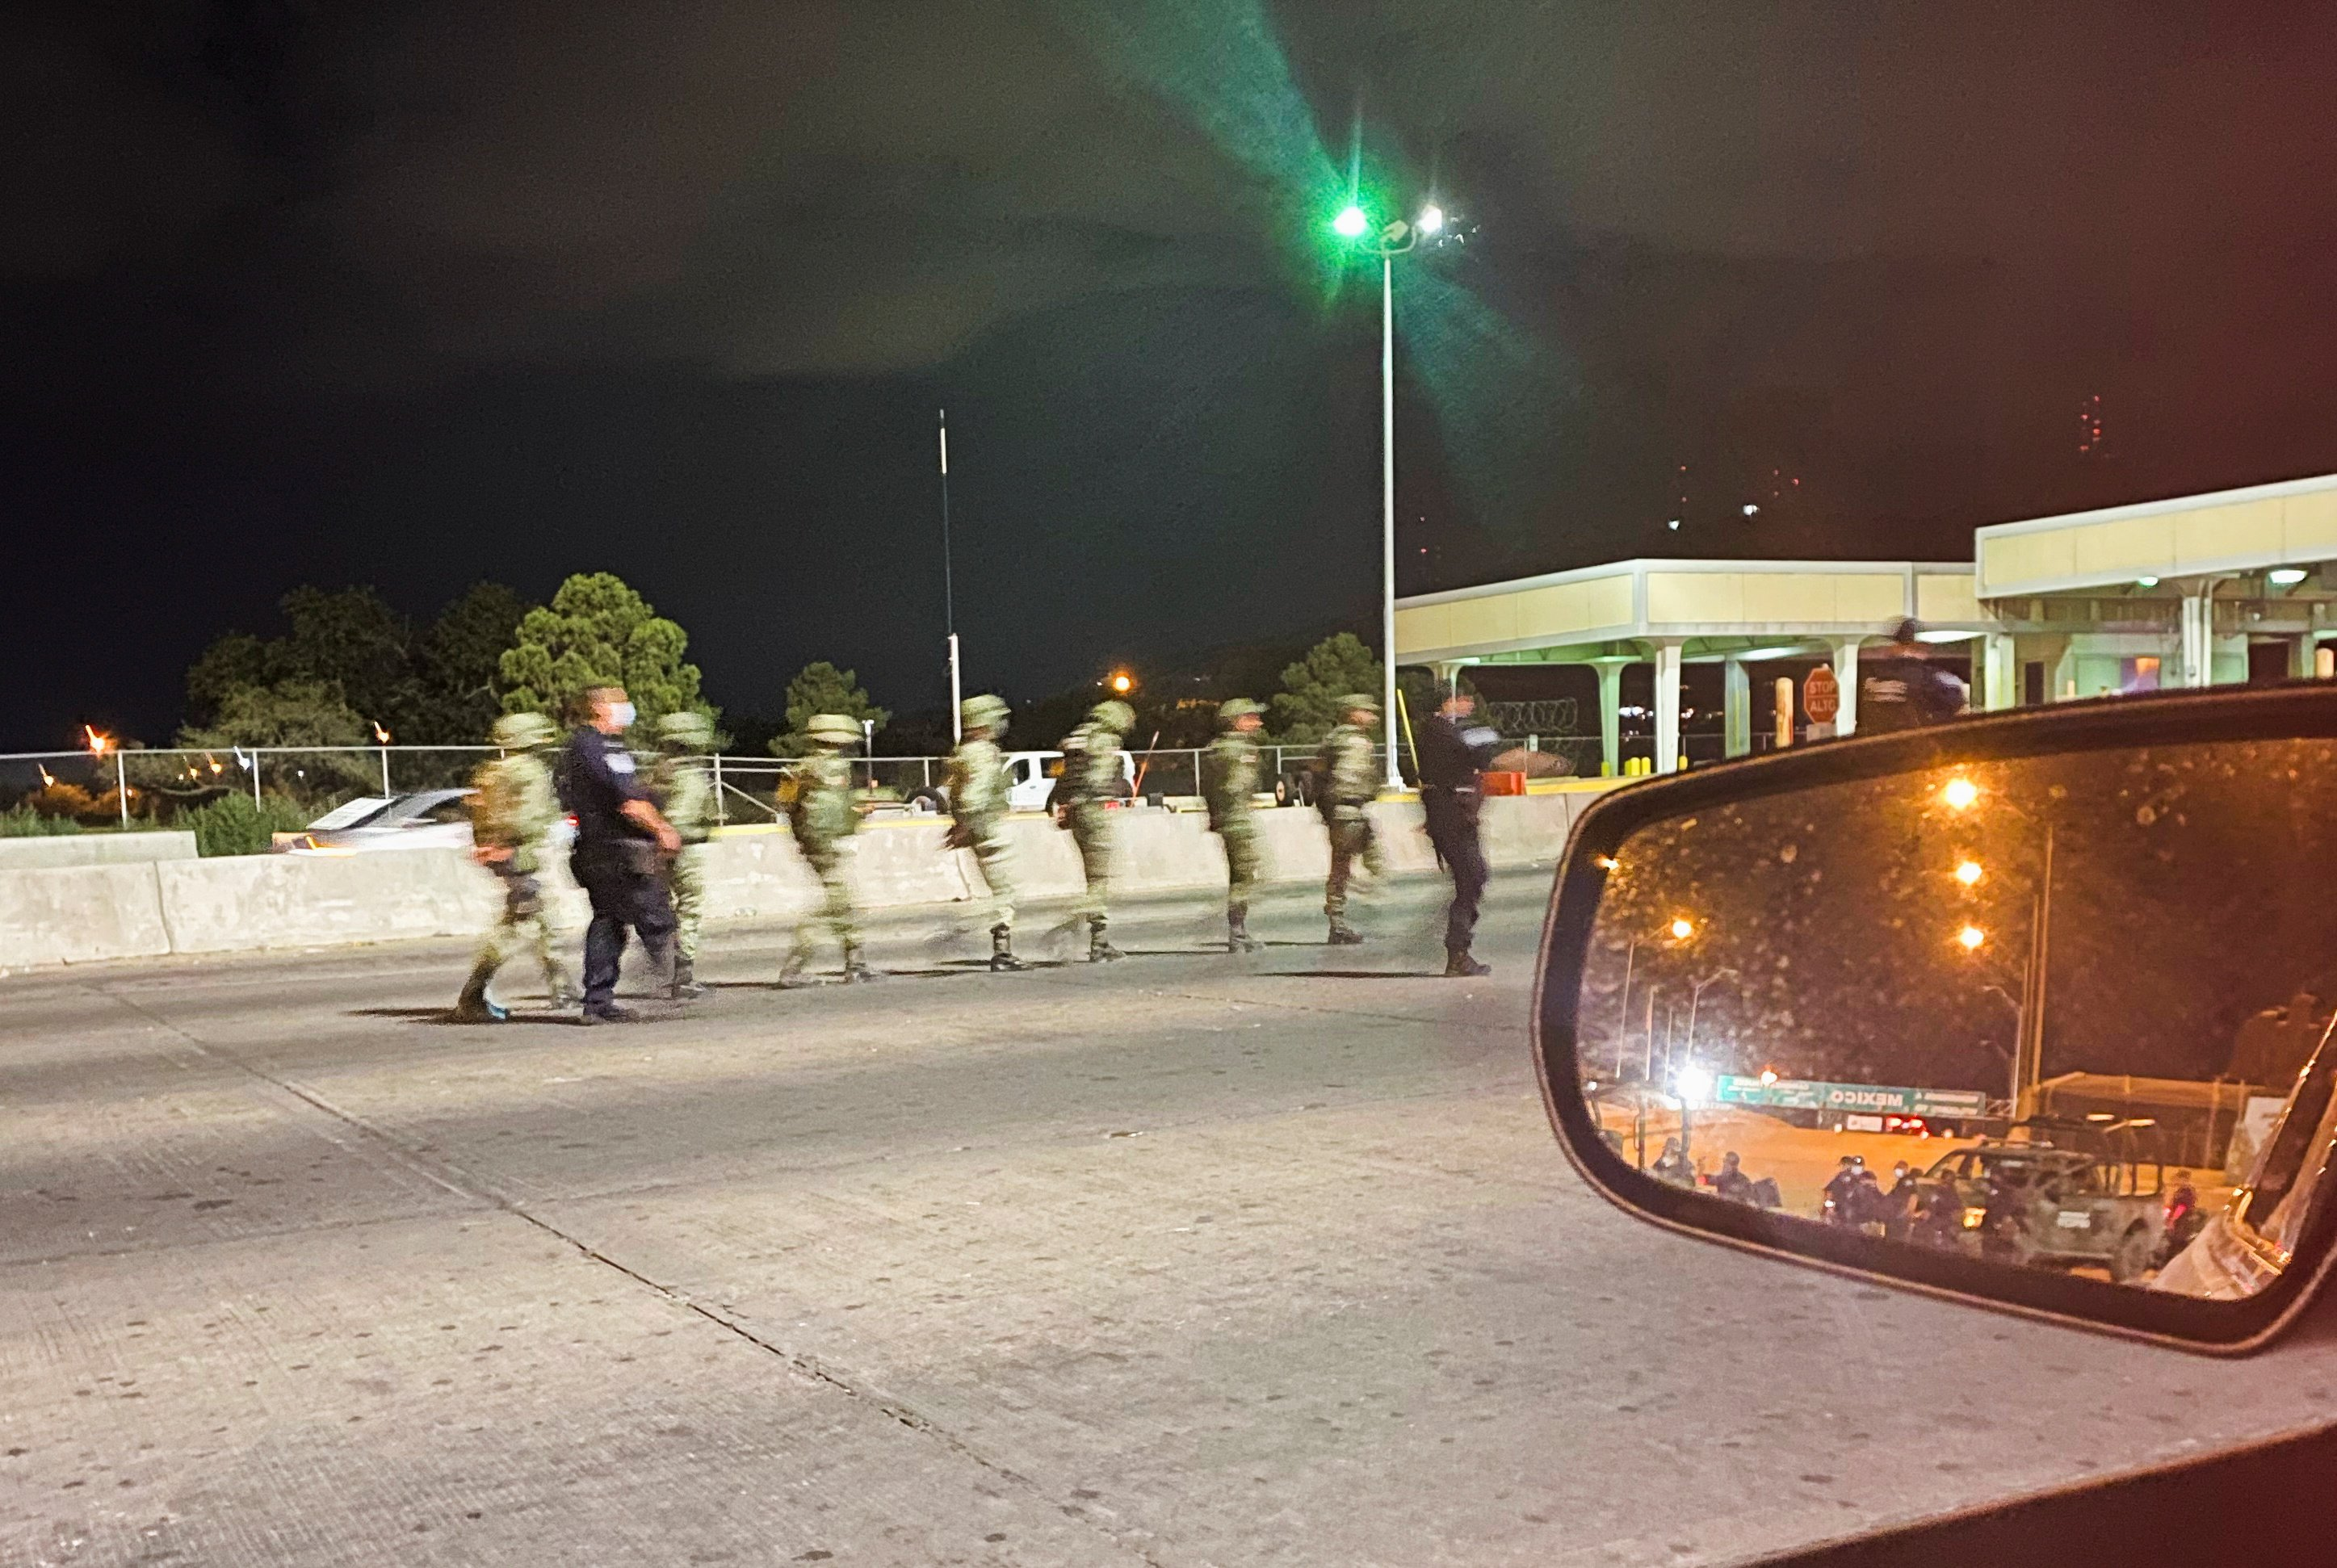 U.S. detains 14 Mexican soldiers who accidentally crossed border